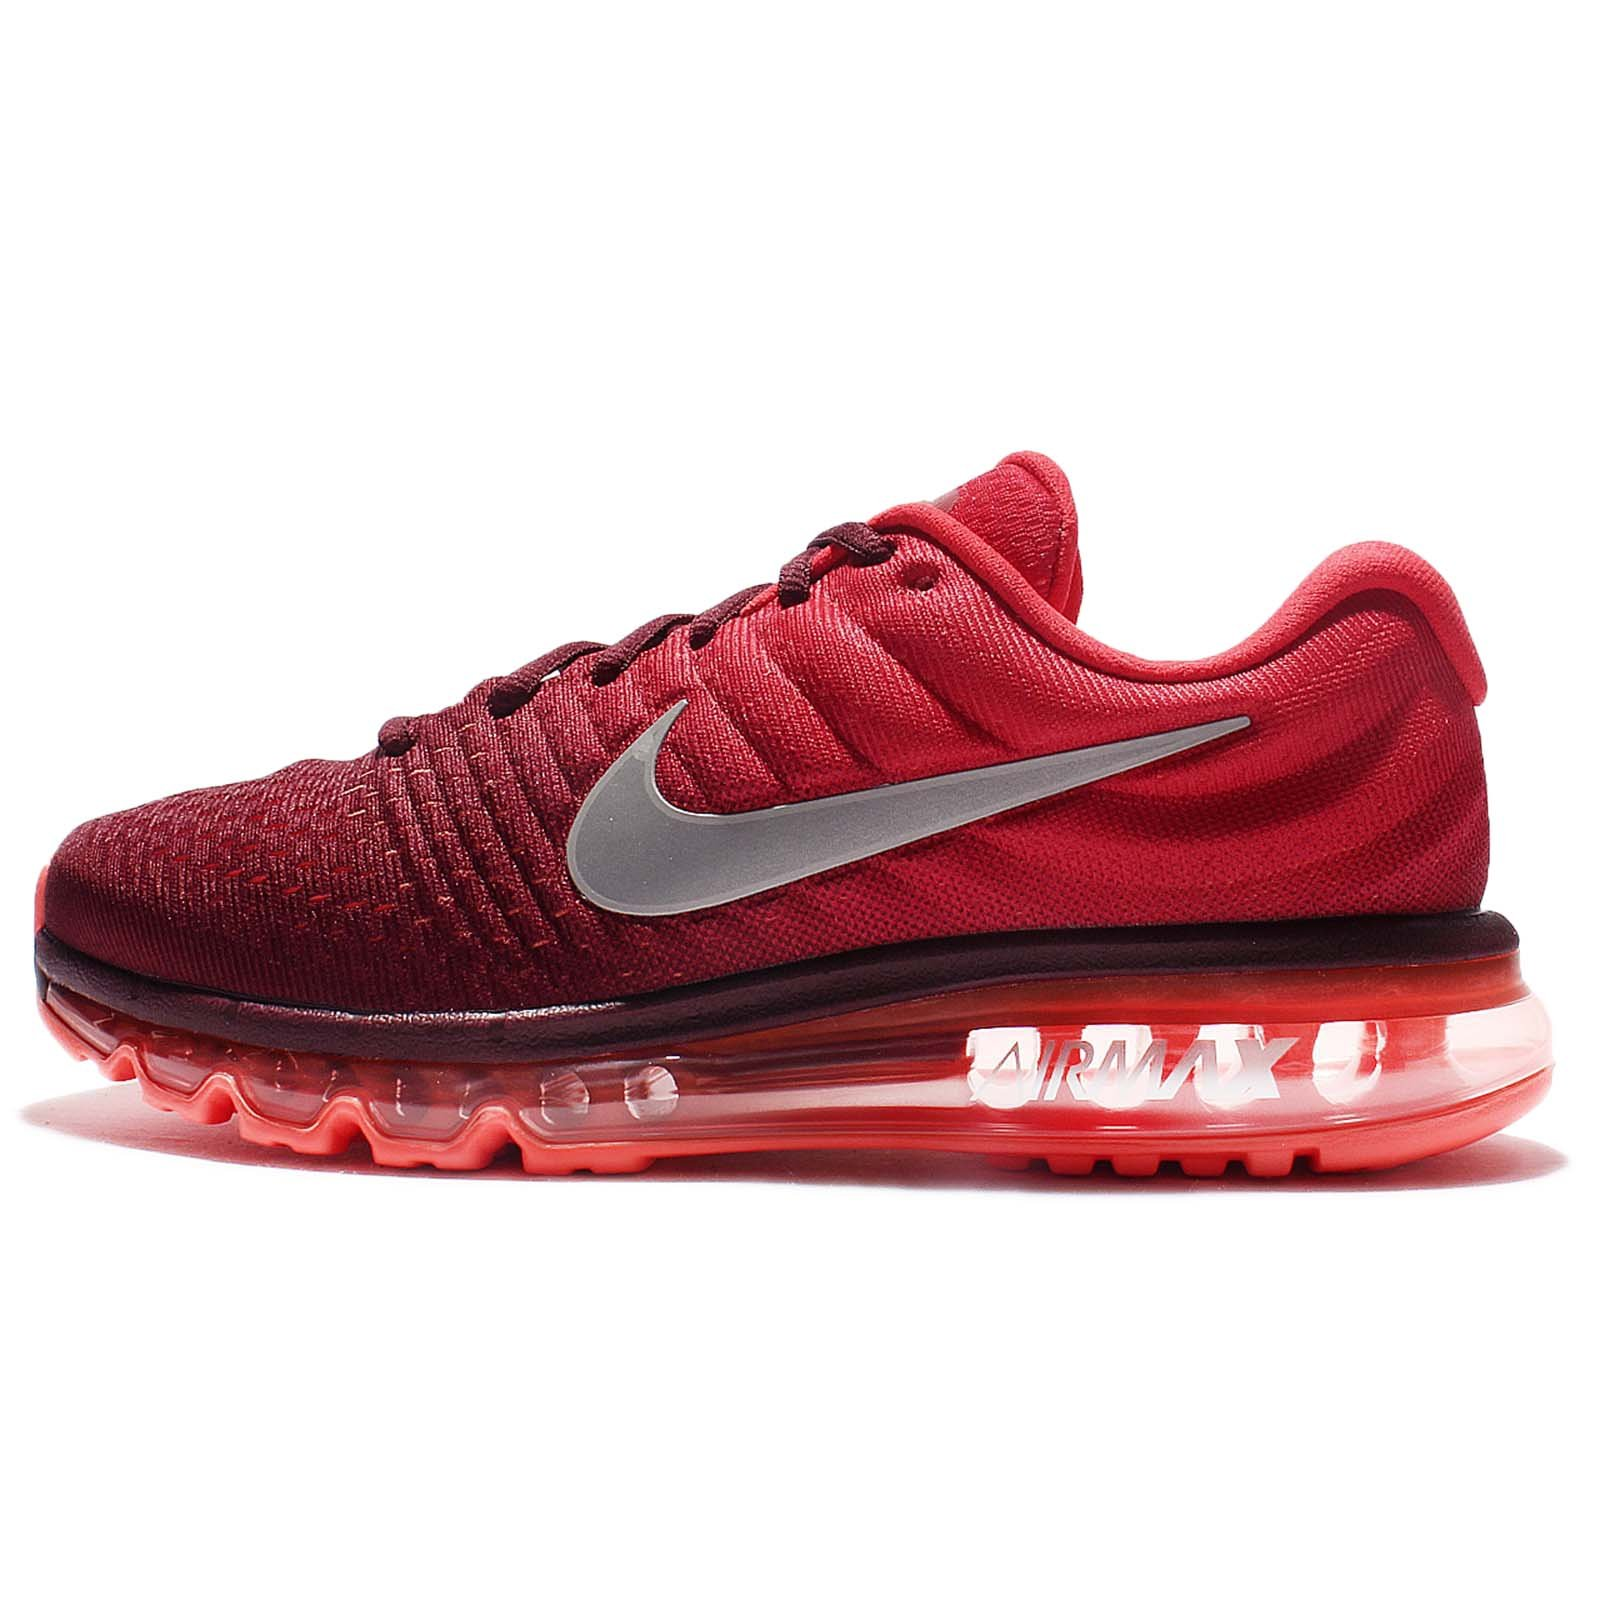 the best attitude 32d74 80917 Galleon - Nike Men s Air Max 2017 Running Sneakers (Maroon White Gym Red  Nylon) Size 10